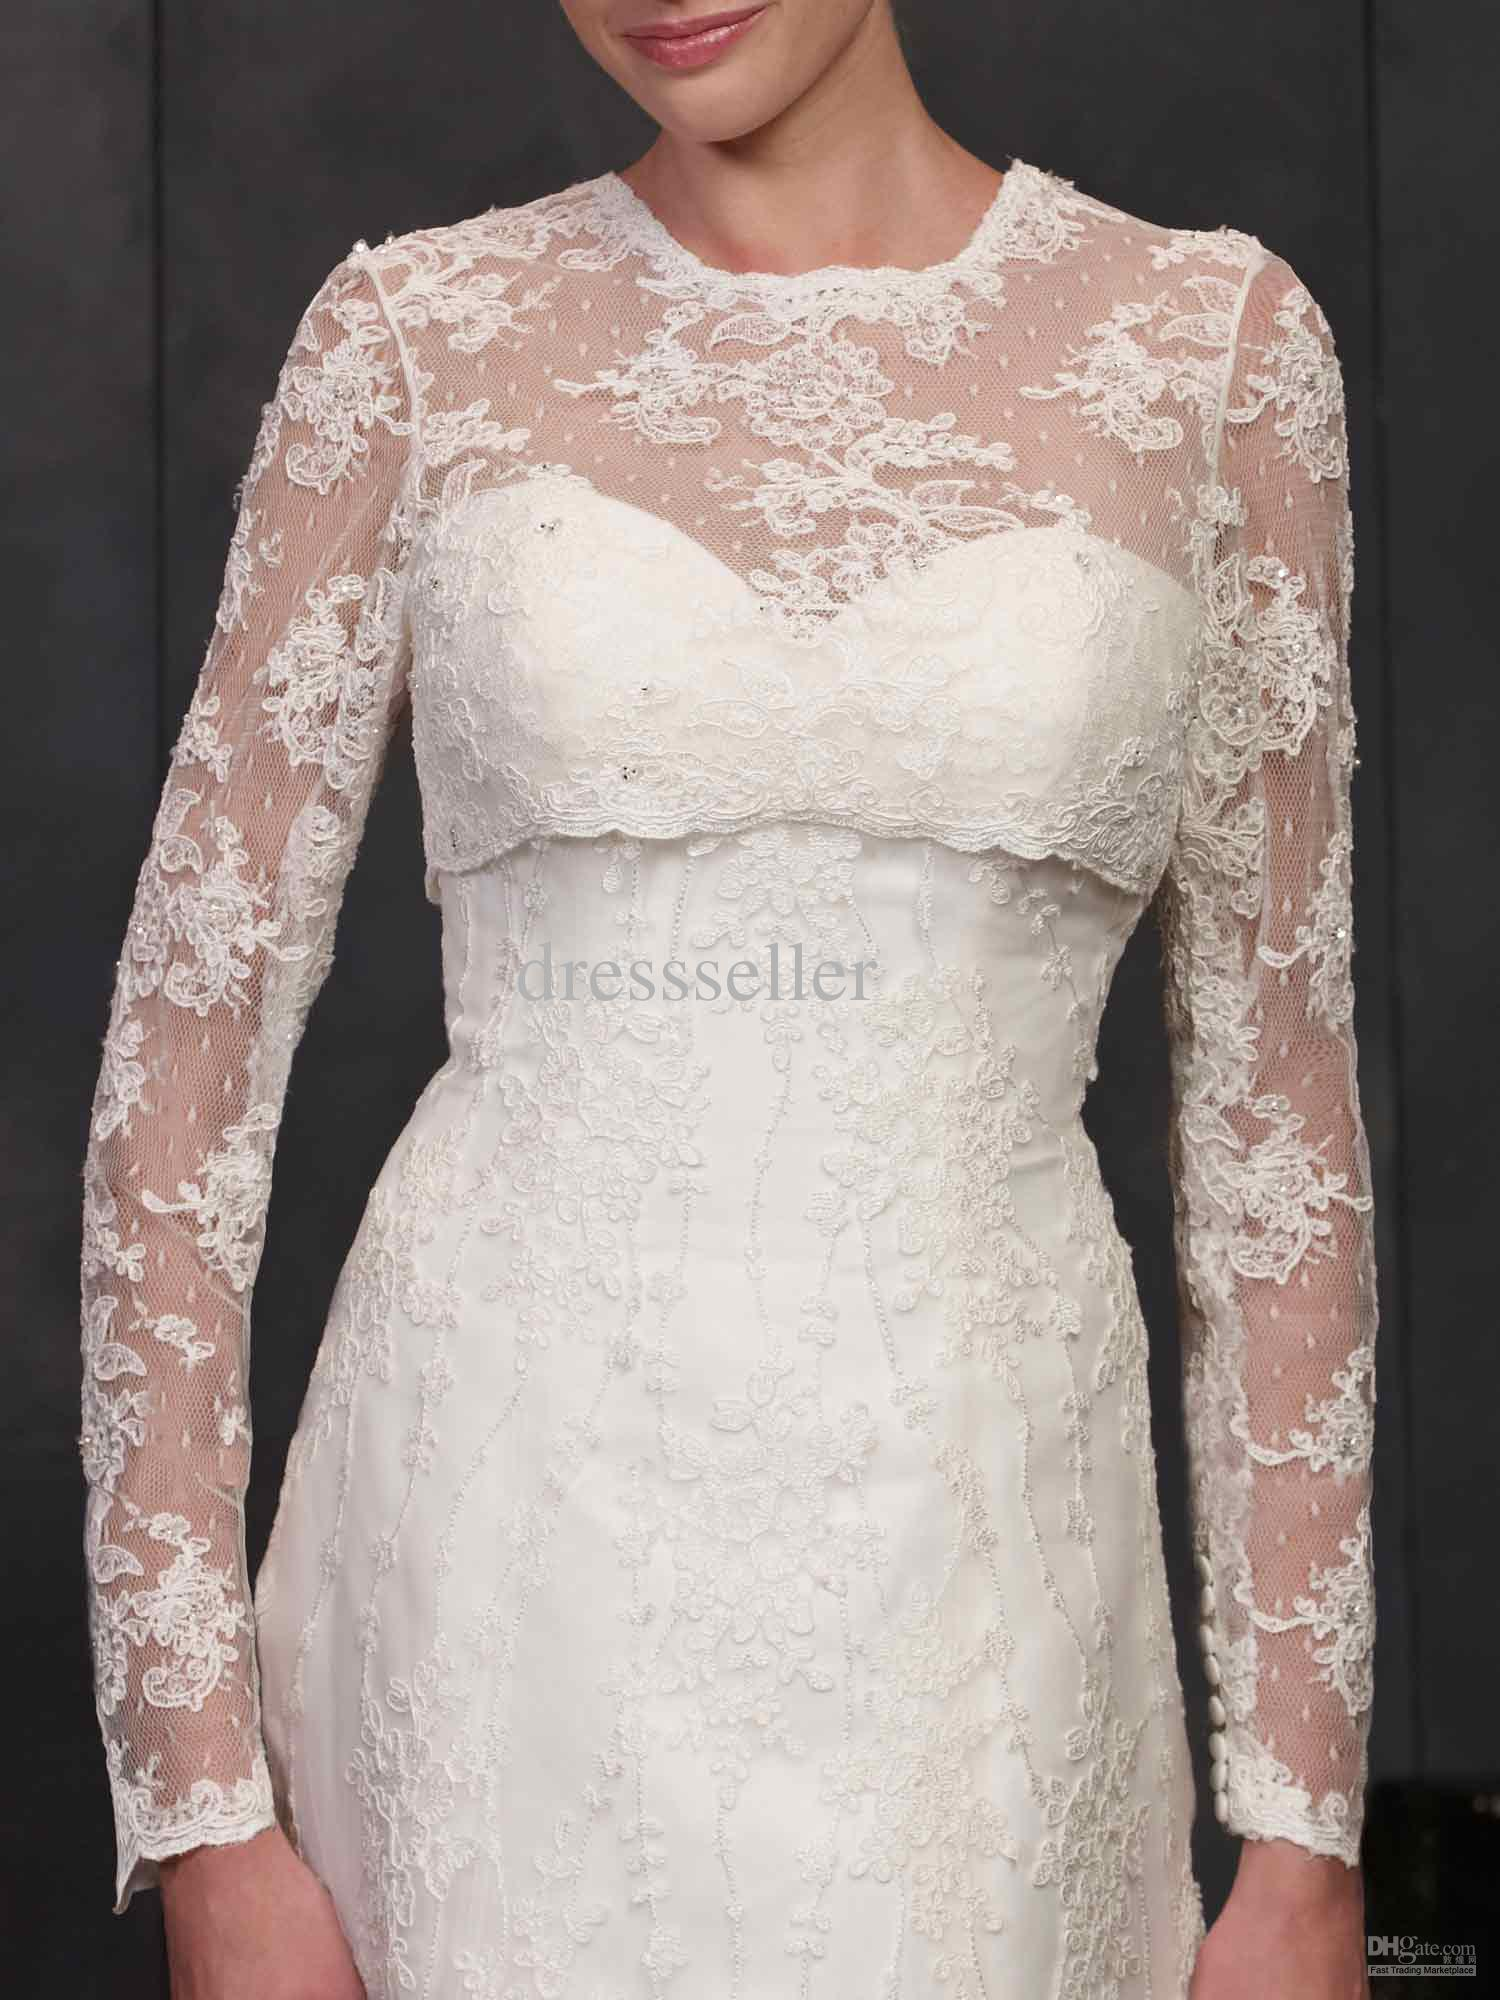 Hot sale high quality crew cover back long sleeve dotted lace hot sale high quality crew cover back long sleeve dotted lace bridal bolero wedding dress jacket wedding dress jacket long sleeve bridal bolero lace jacket ombrellifo Images